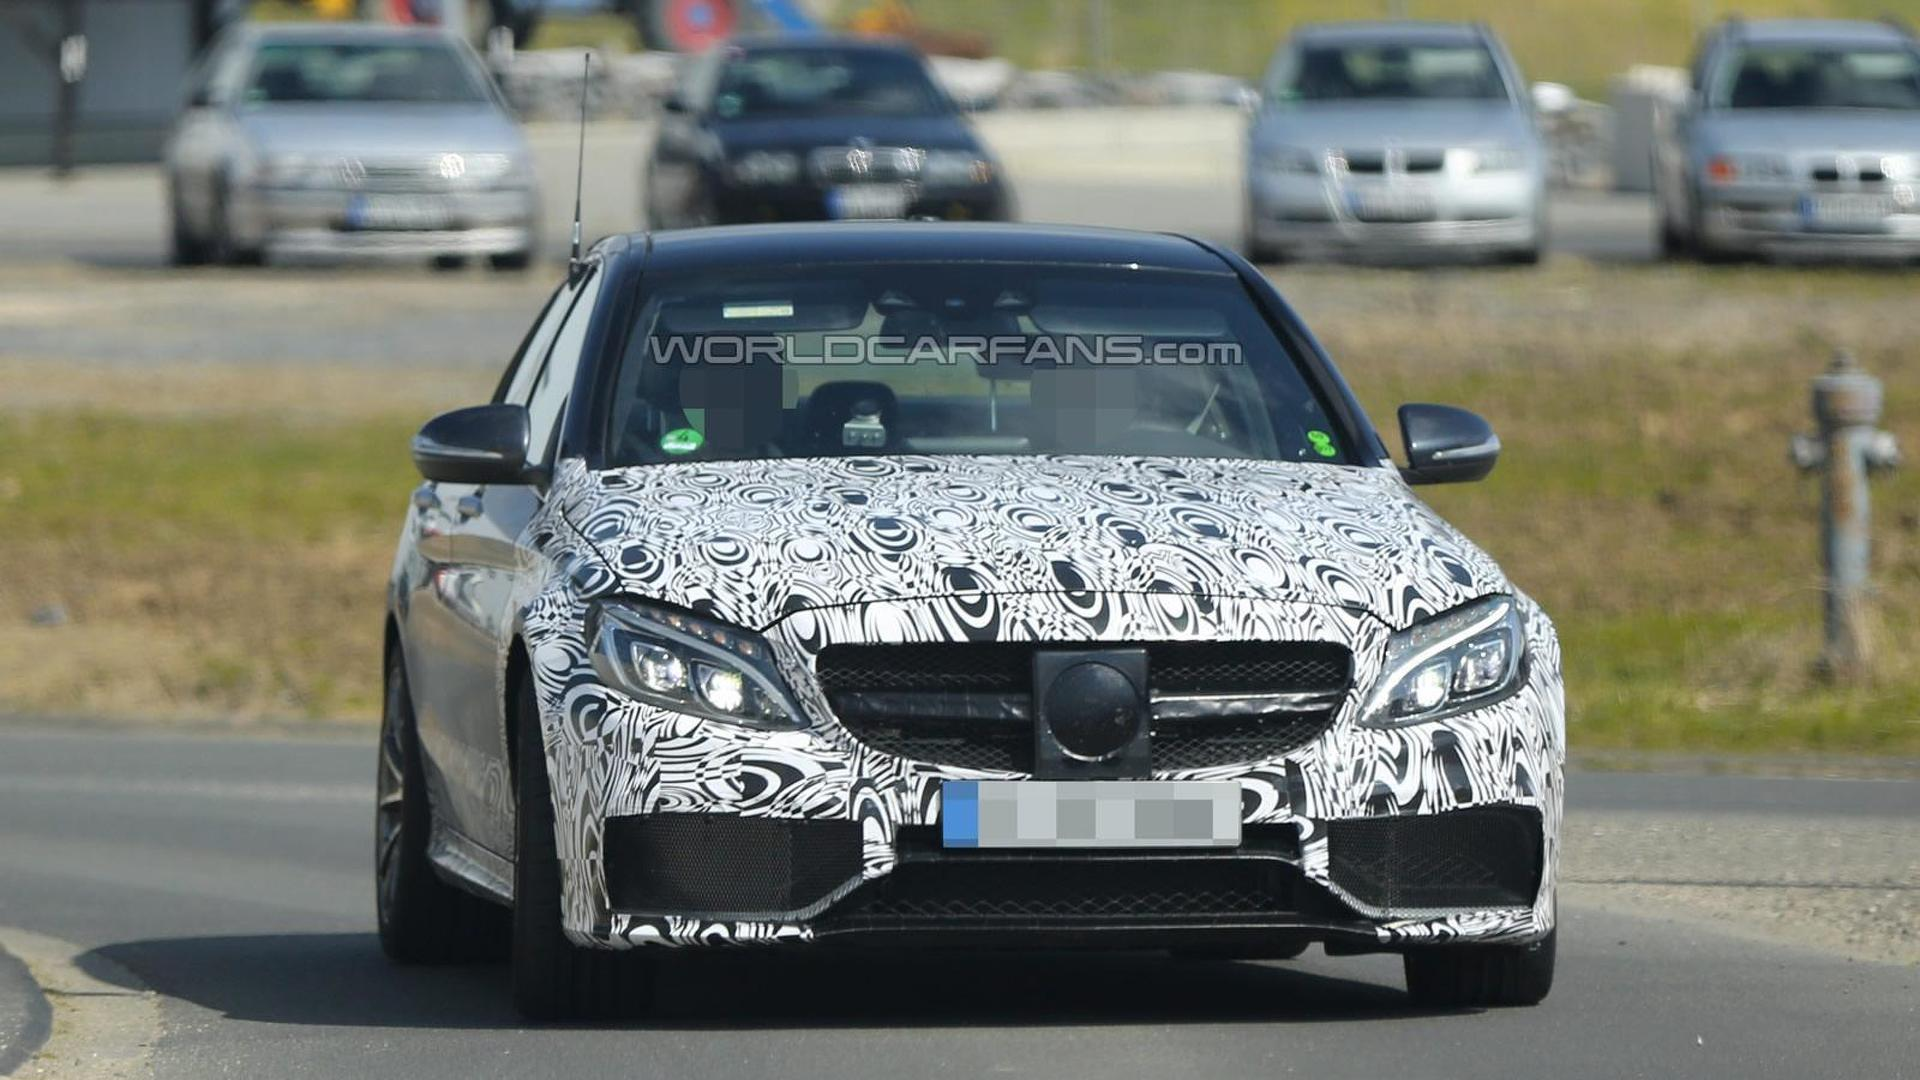 Mercedes Benz C63 Amg Sedan Spied Wearing Less Camo On Front